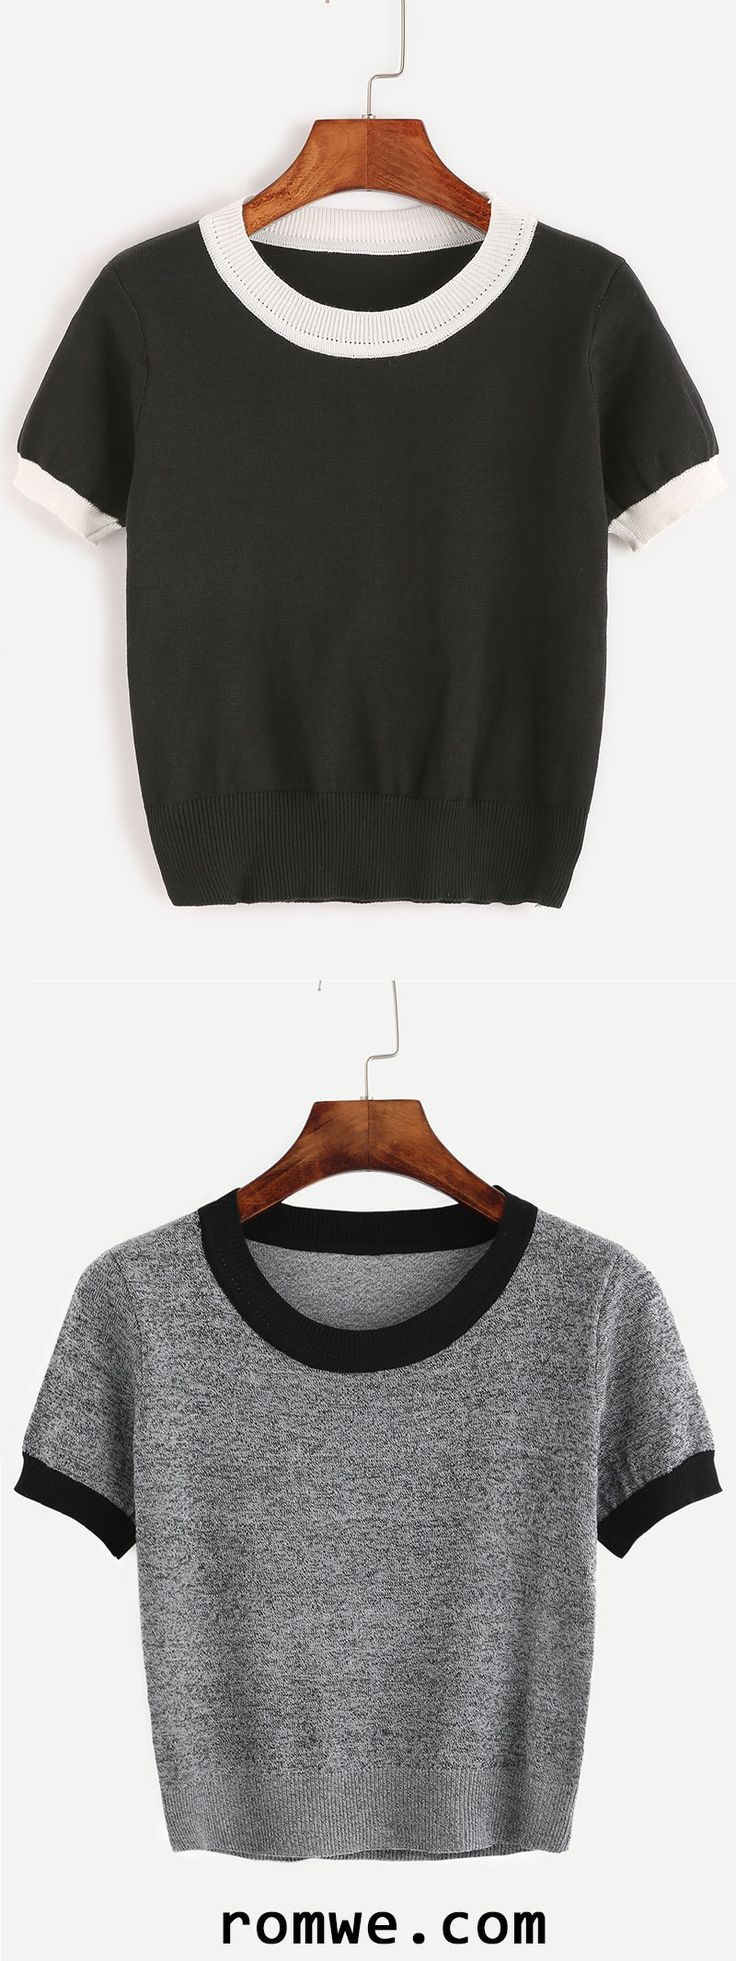 Contrast Trim Knitted T-shirt